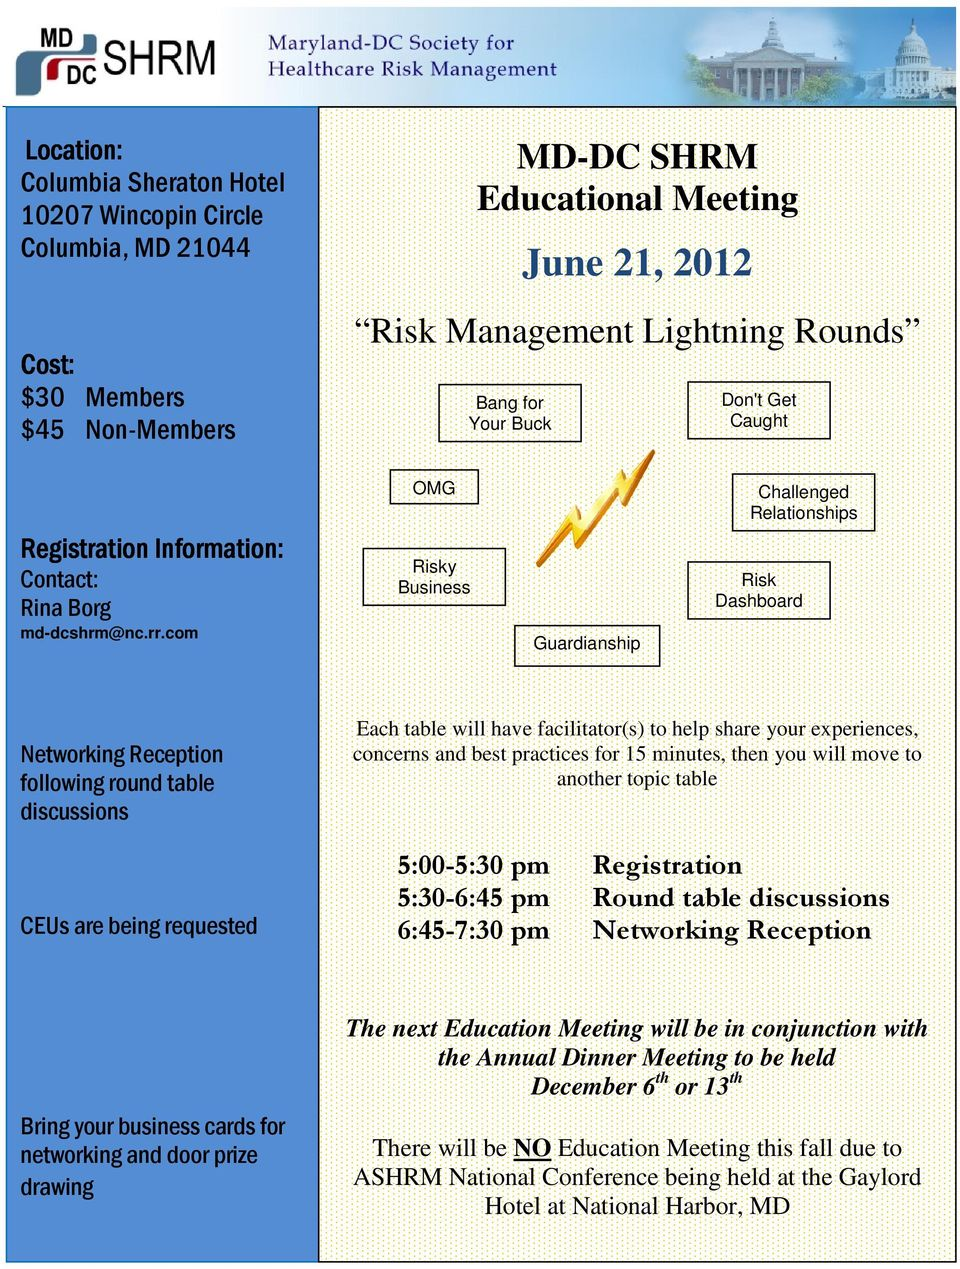 com OMG Risky Business Guardianship Challenged Relationships Risk Dashboard Networking Reception following round table discussions CEUs are being requested Each table will have facilitator(s) to help